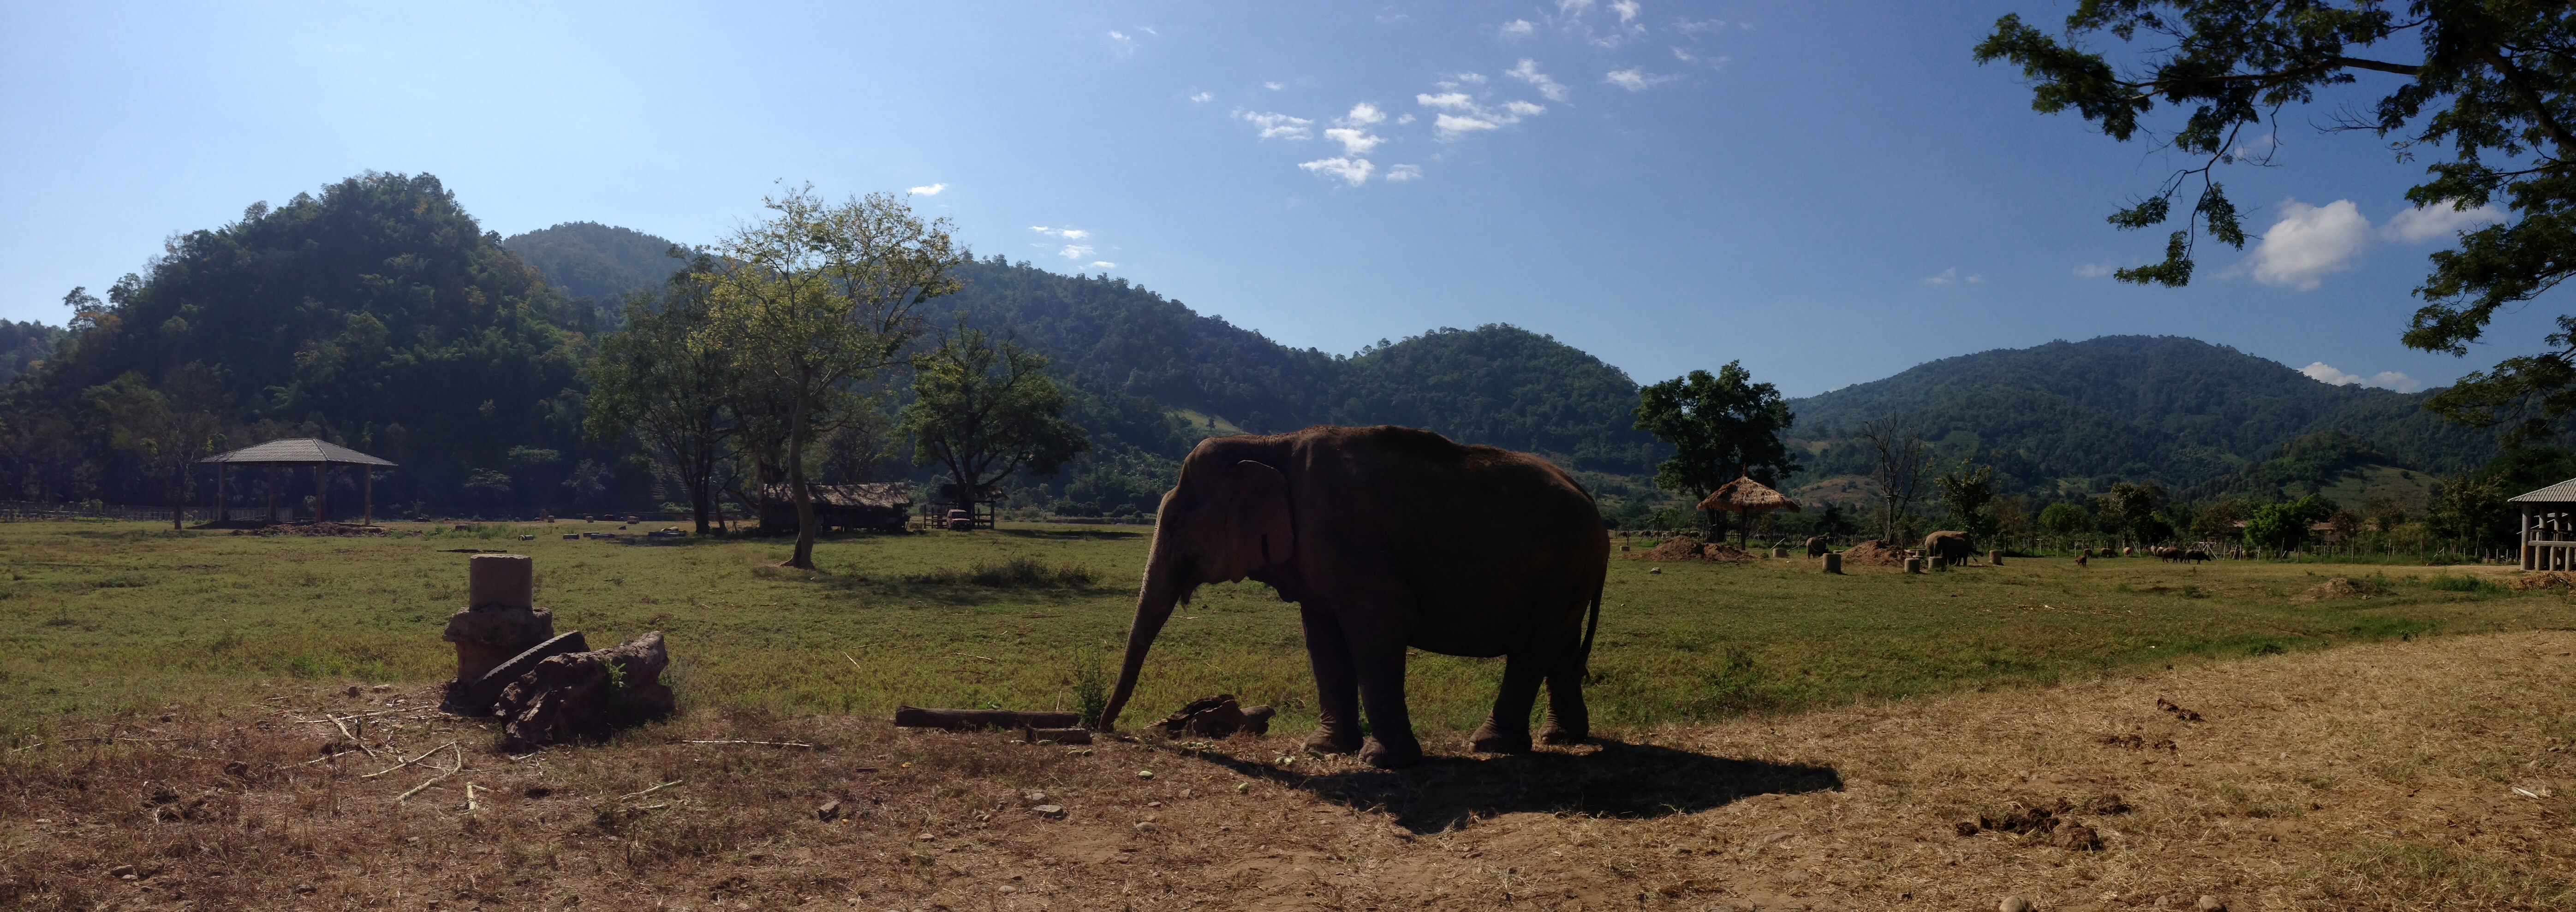 Visiting the Elephant Nature Park in Chiang Mai, Thailand